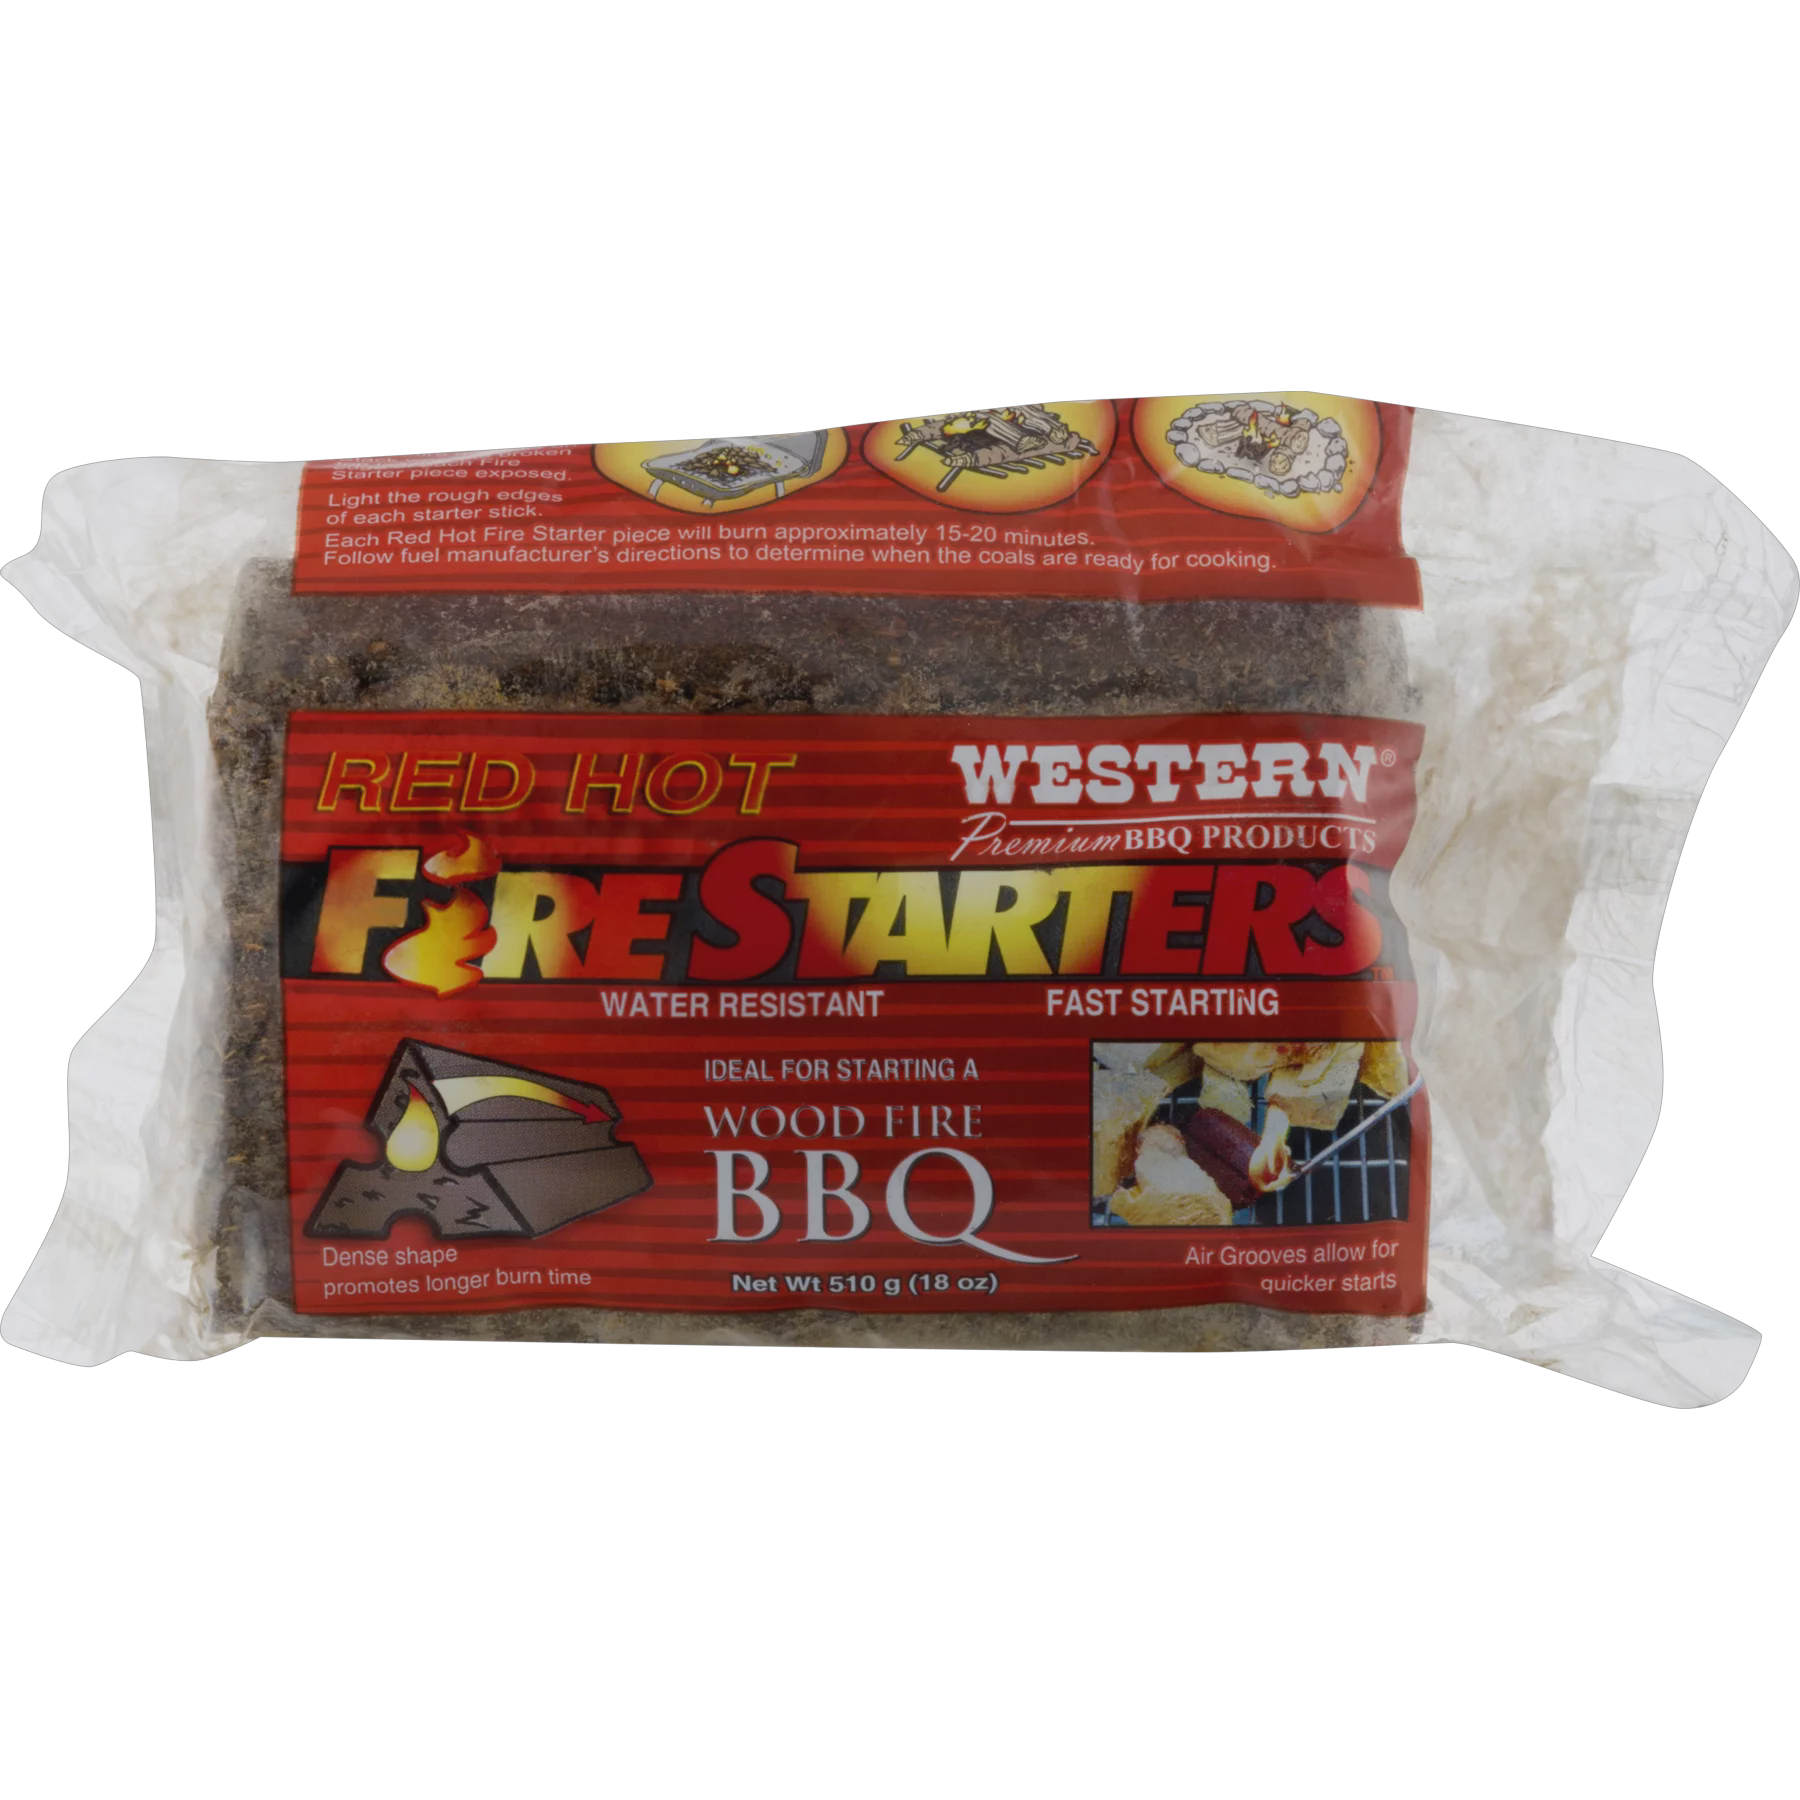 Western Premium BBQ Products Red Hot Fire Starters 4-pk by W W Wood, Inc.